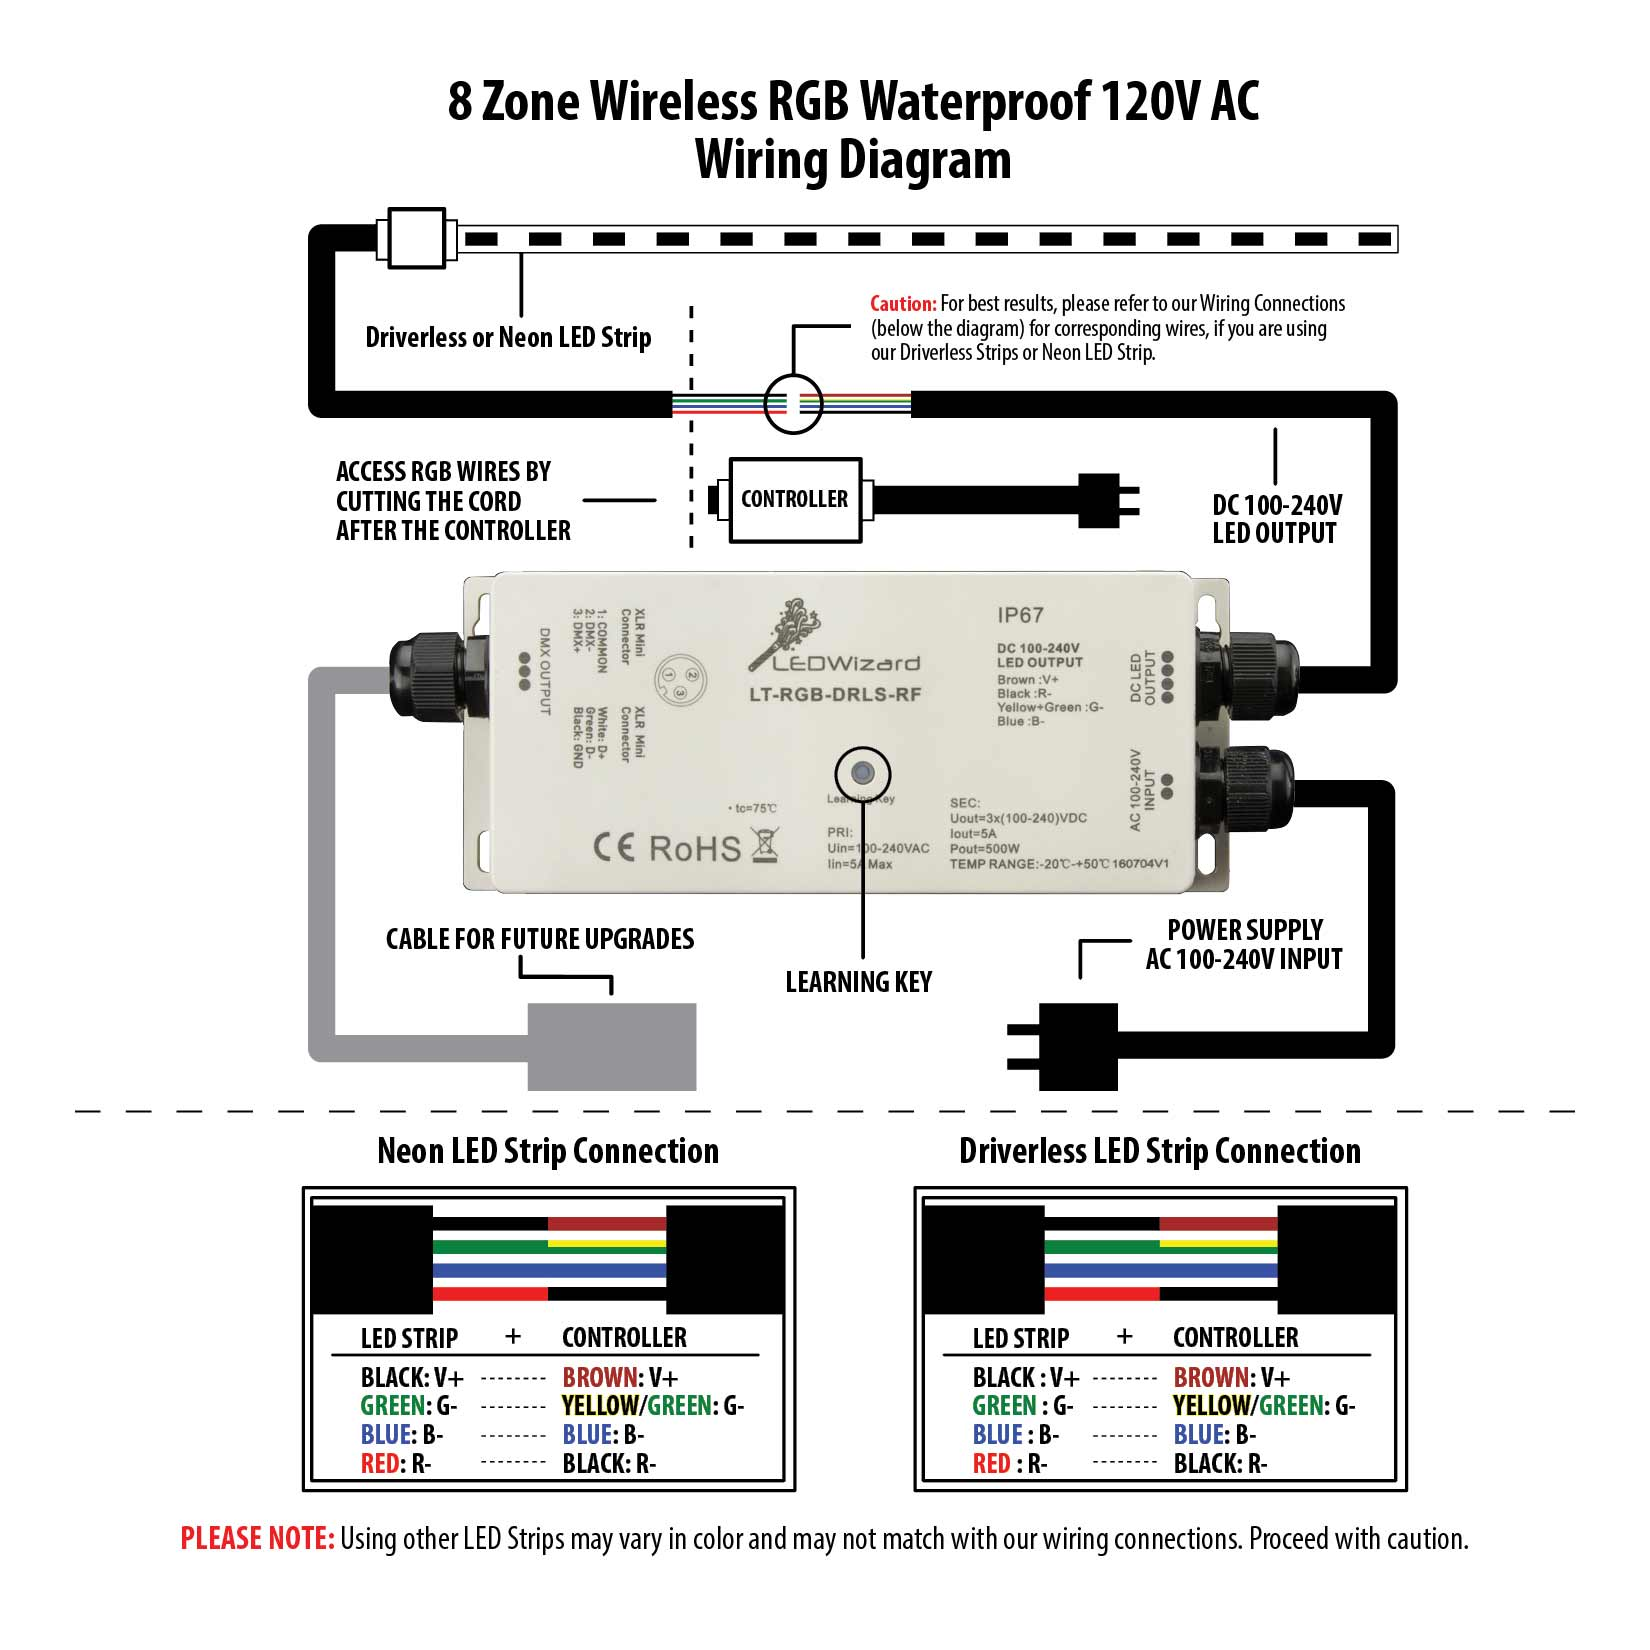 Variac Transformer Wiring Diagram 33 Images Xlr 8 Zone Wireless Waterproof 120v Ac Dimmer Diagrams 1280720